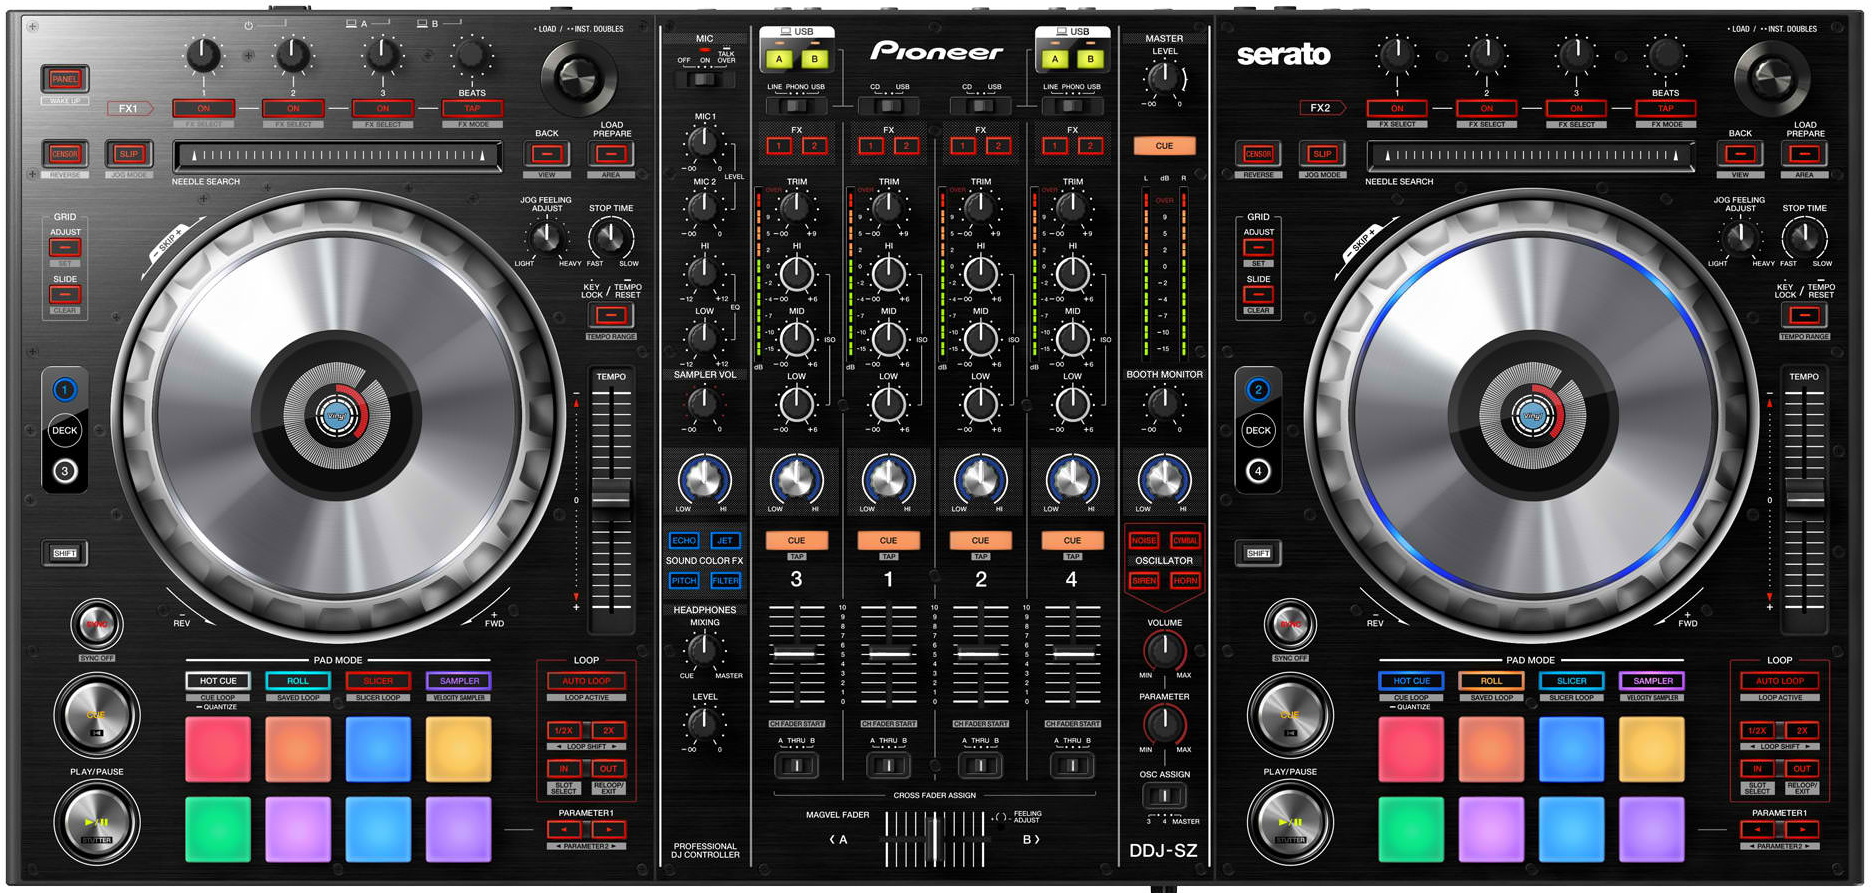 The Pioneer DDJ-SZ is the company's new flagship controller for Serato DJ, and has the potential to be Serato's coup de grâce.